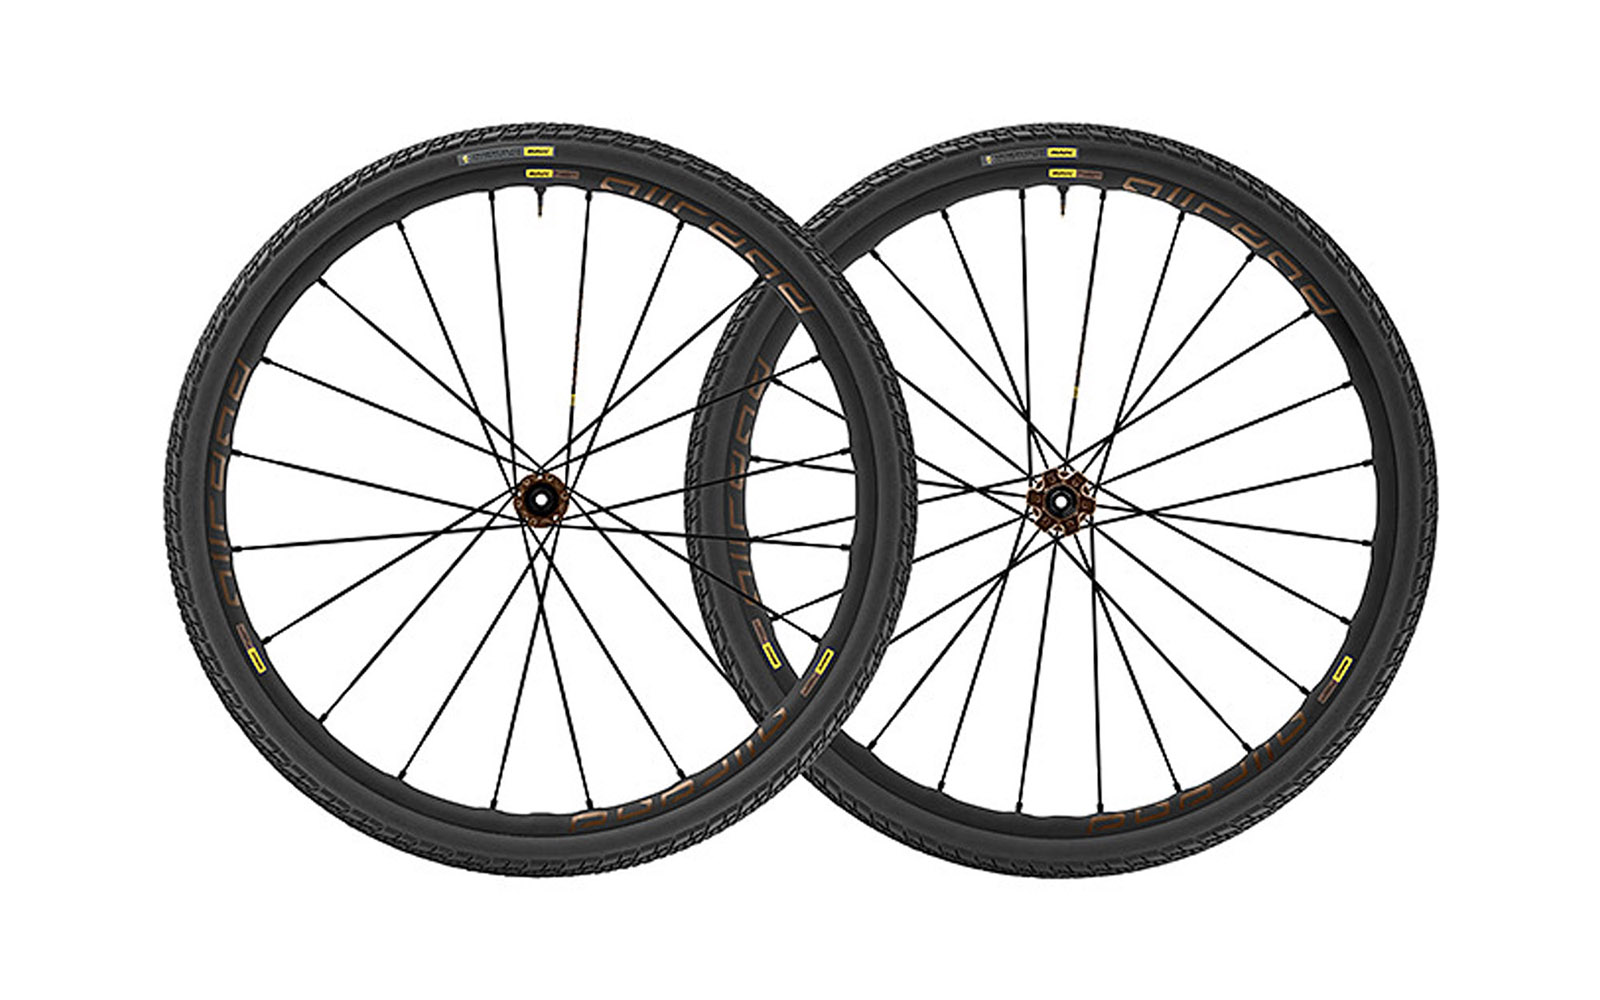 Best gravel and adventure cycling wheels 2019 | Cyclingnews